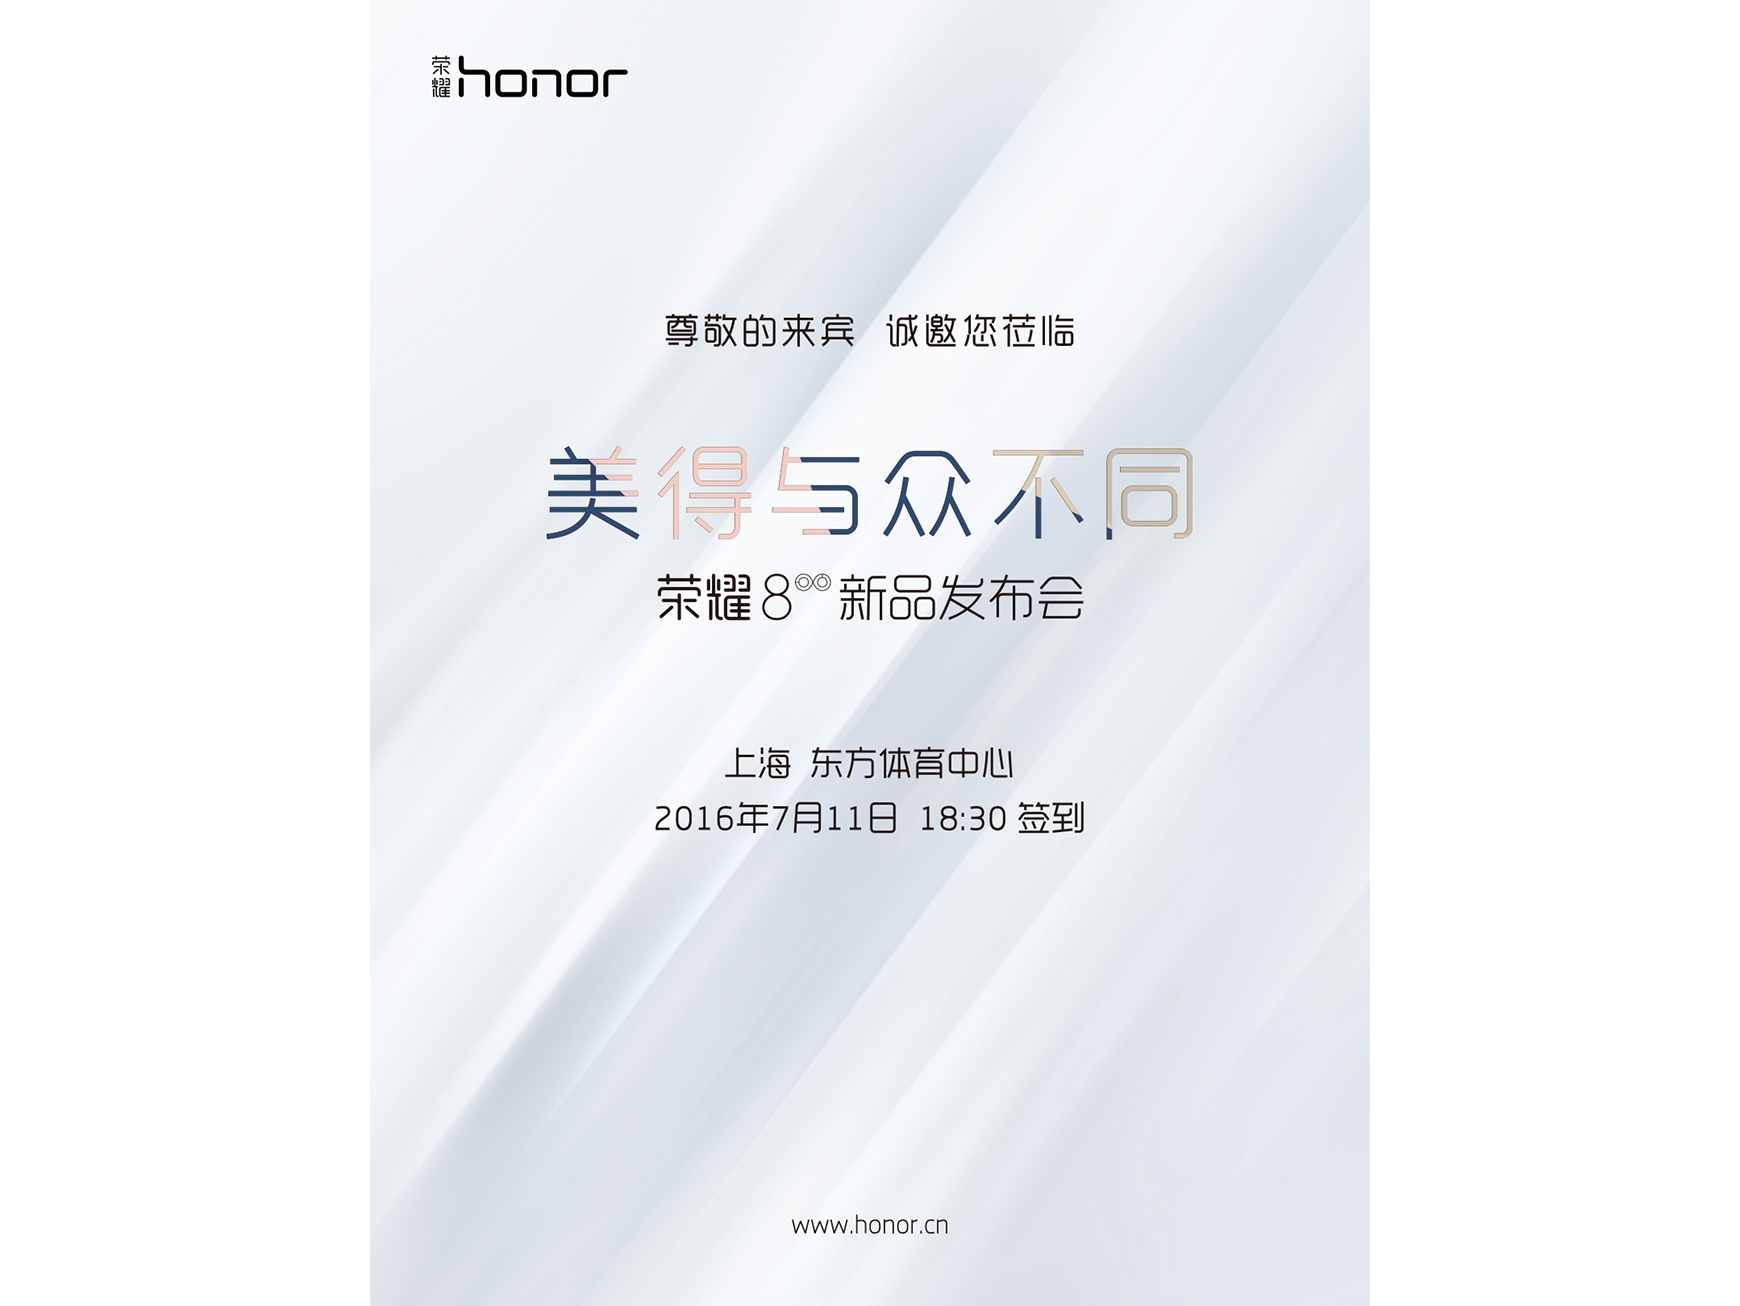 The-honor-8-will-be-announced-on-July-11